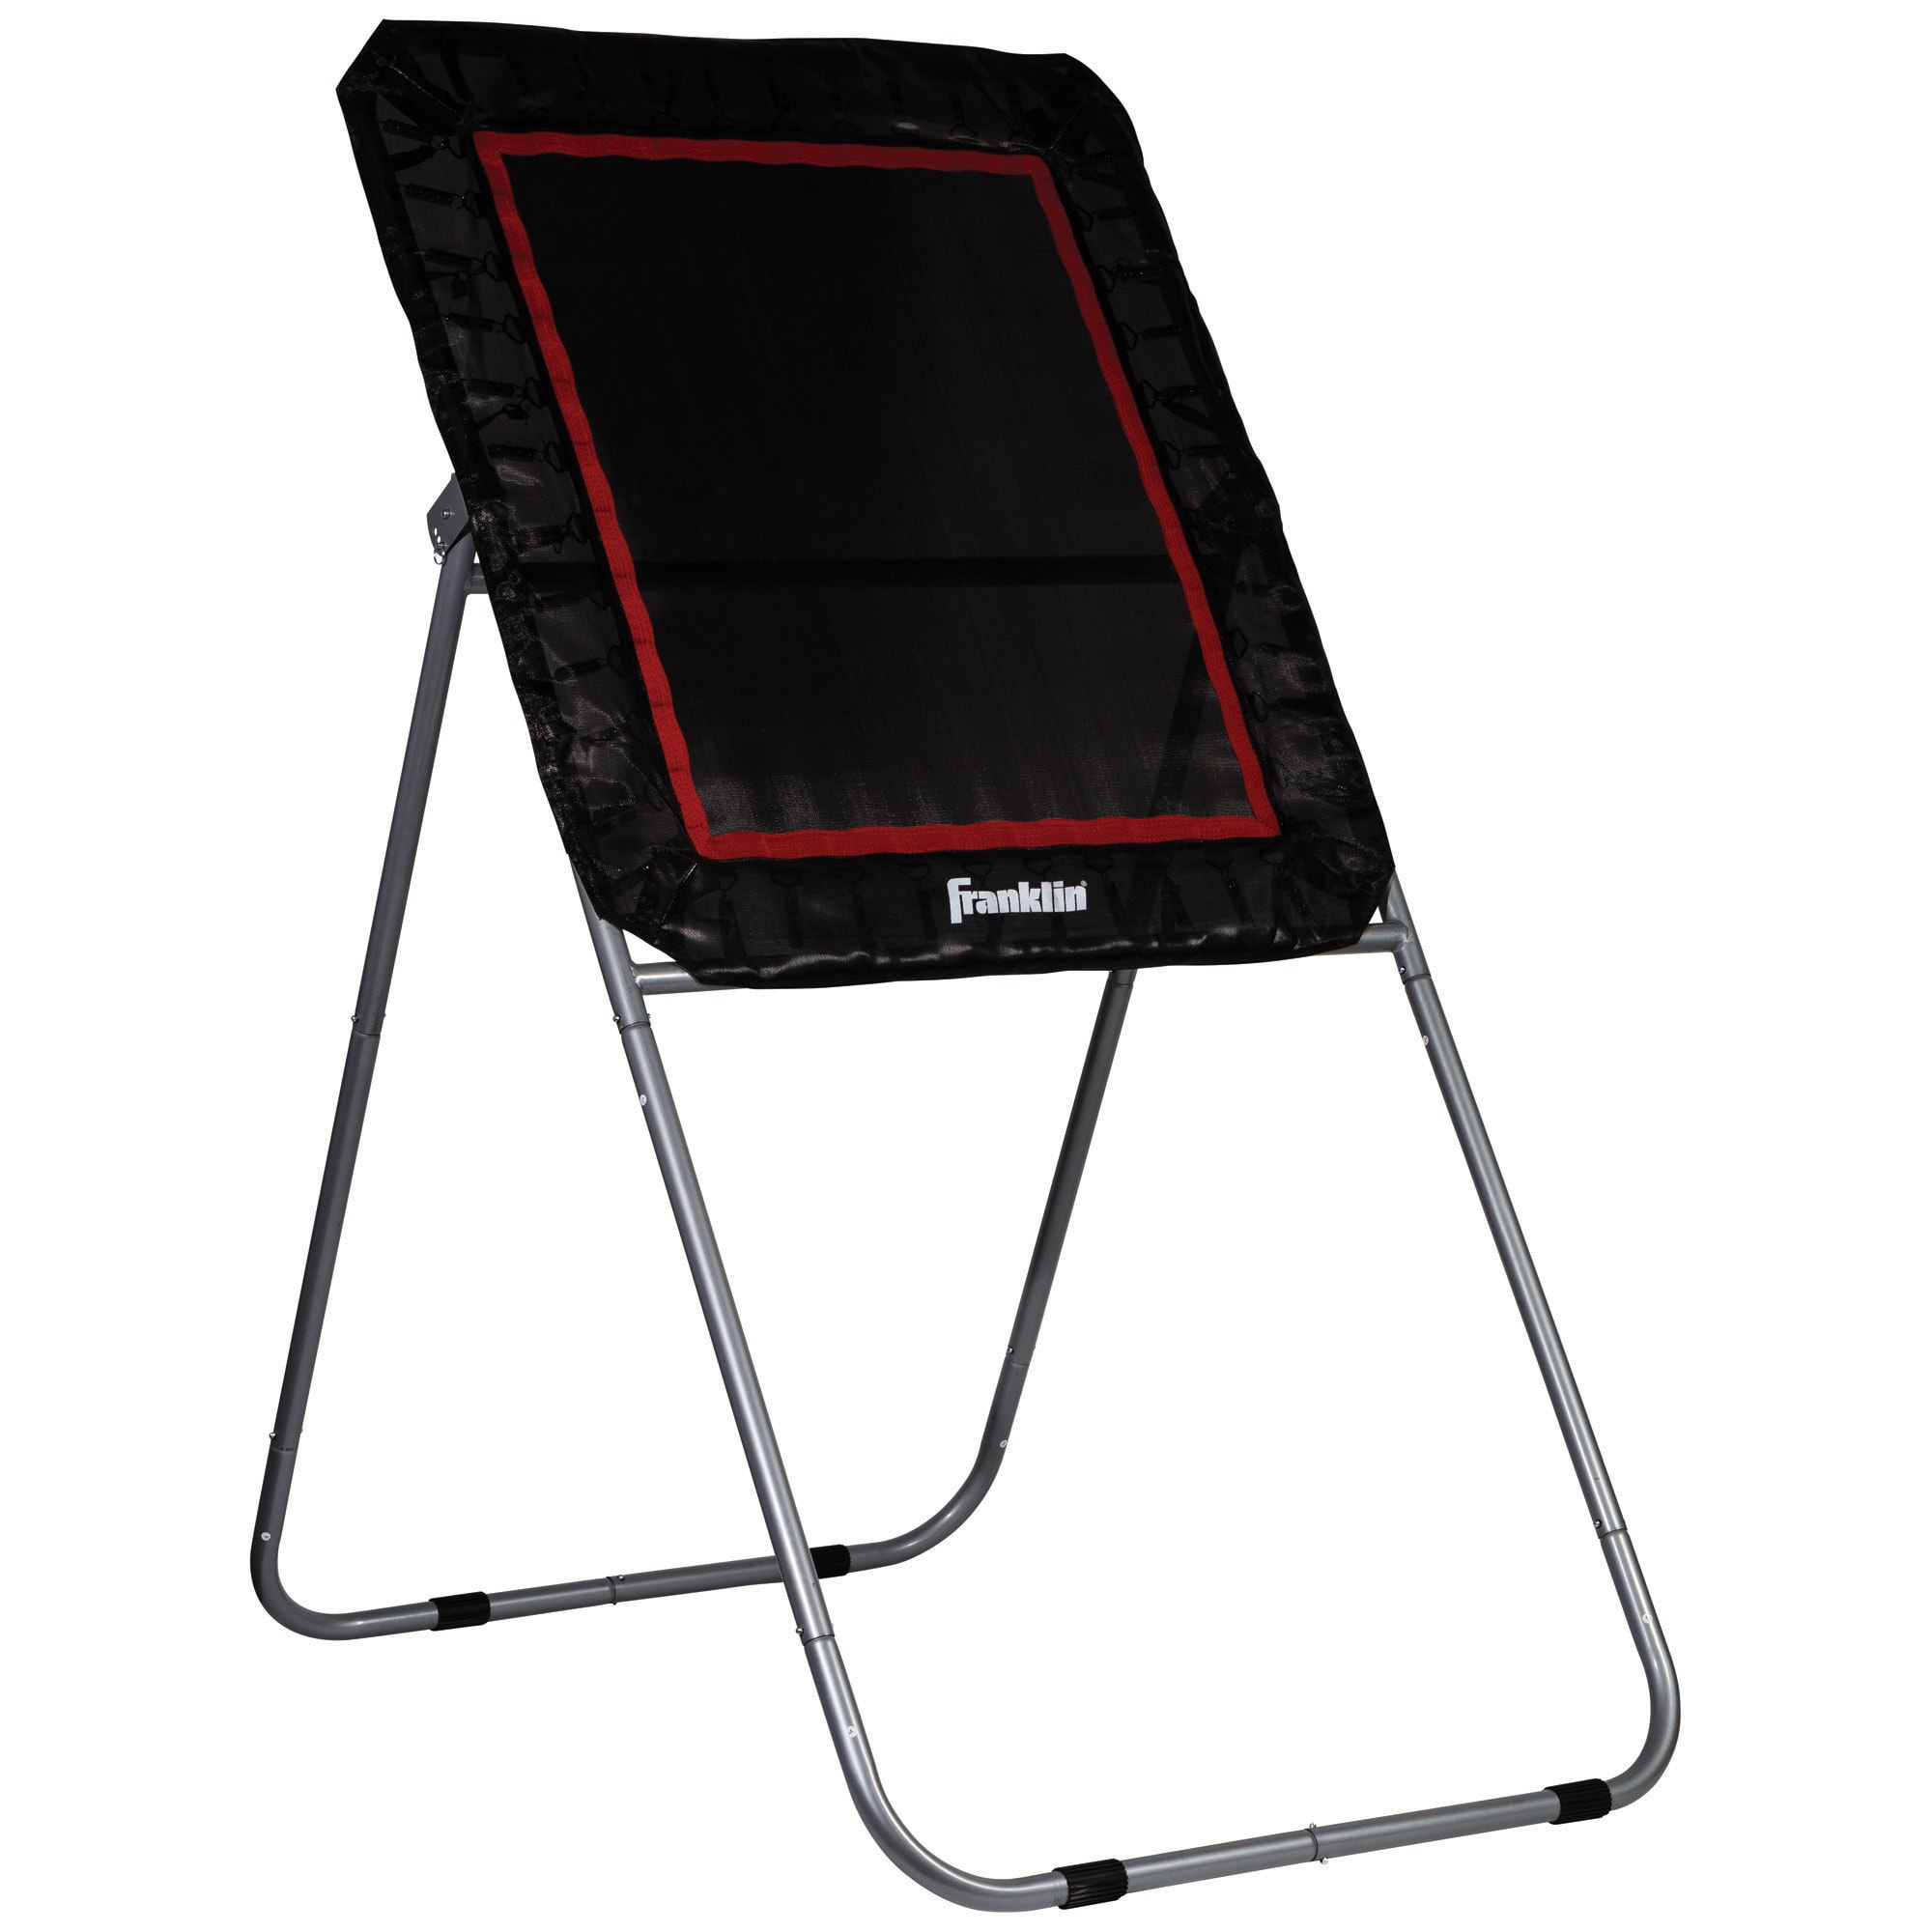 Franklin Sports 4' x 3' Lacrosse Rebounder Steel Trainer by Franklin Sports